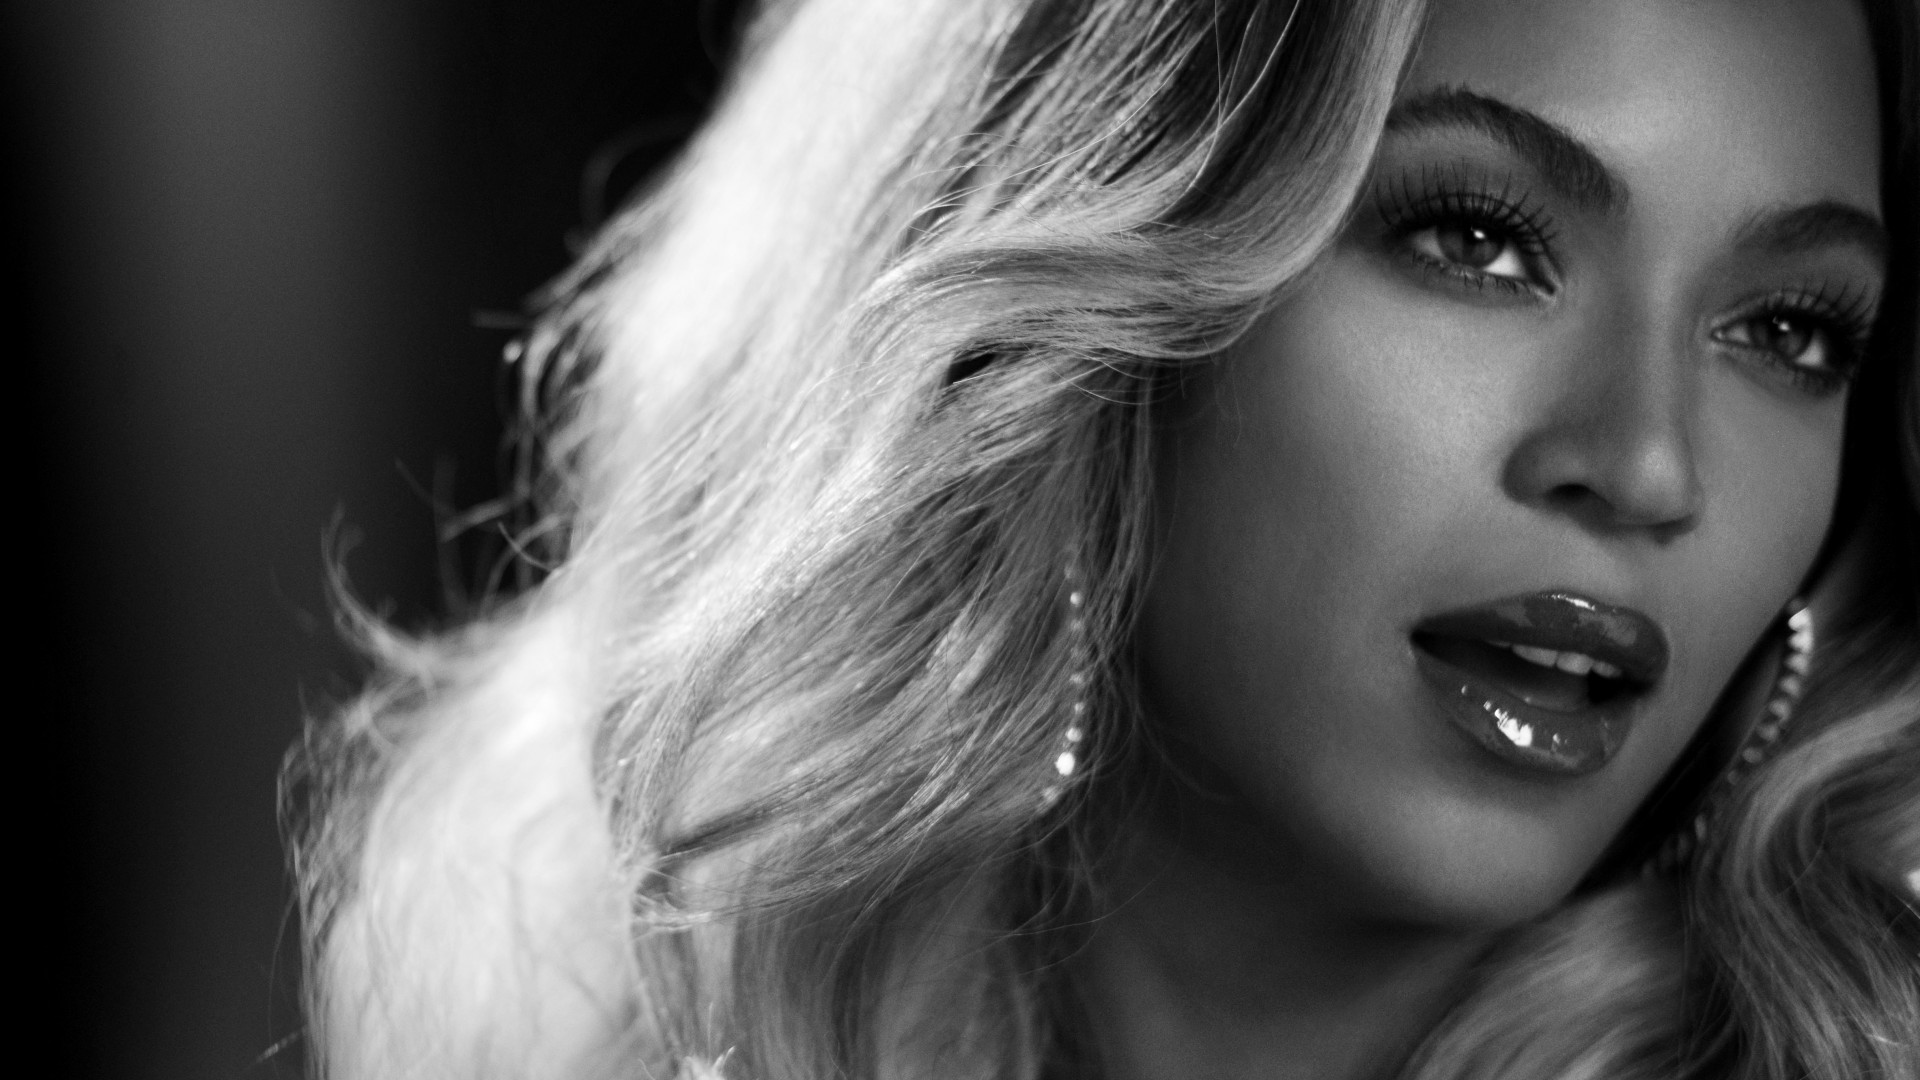 Beyonce in Black & White Wallpaper for Desktop 1920x1080